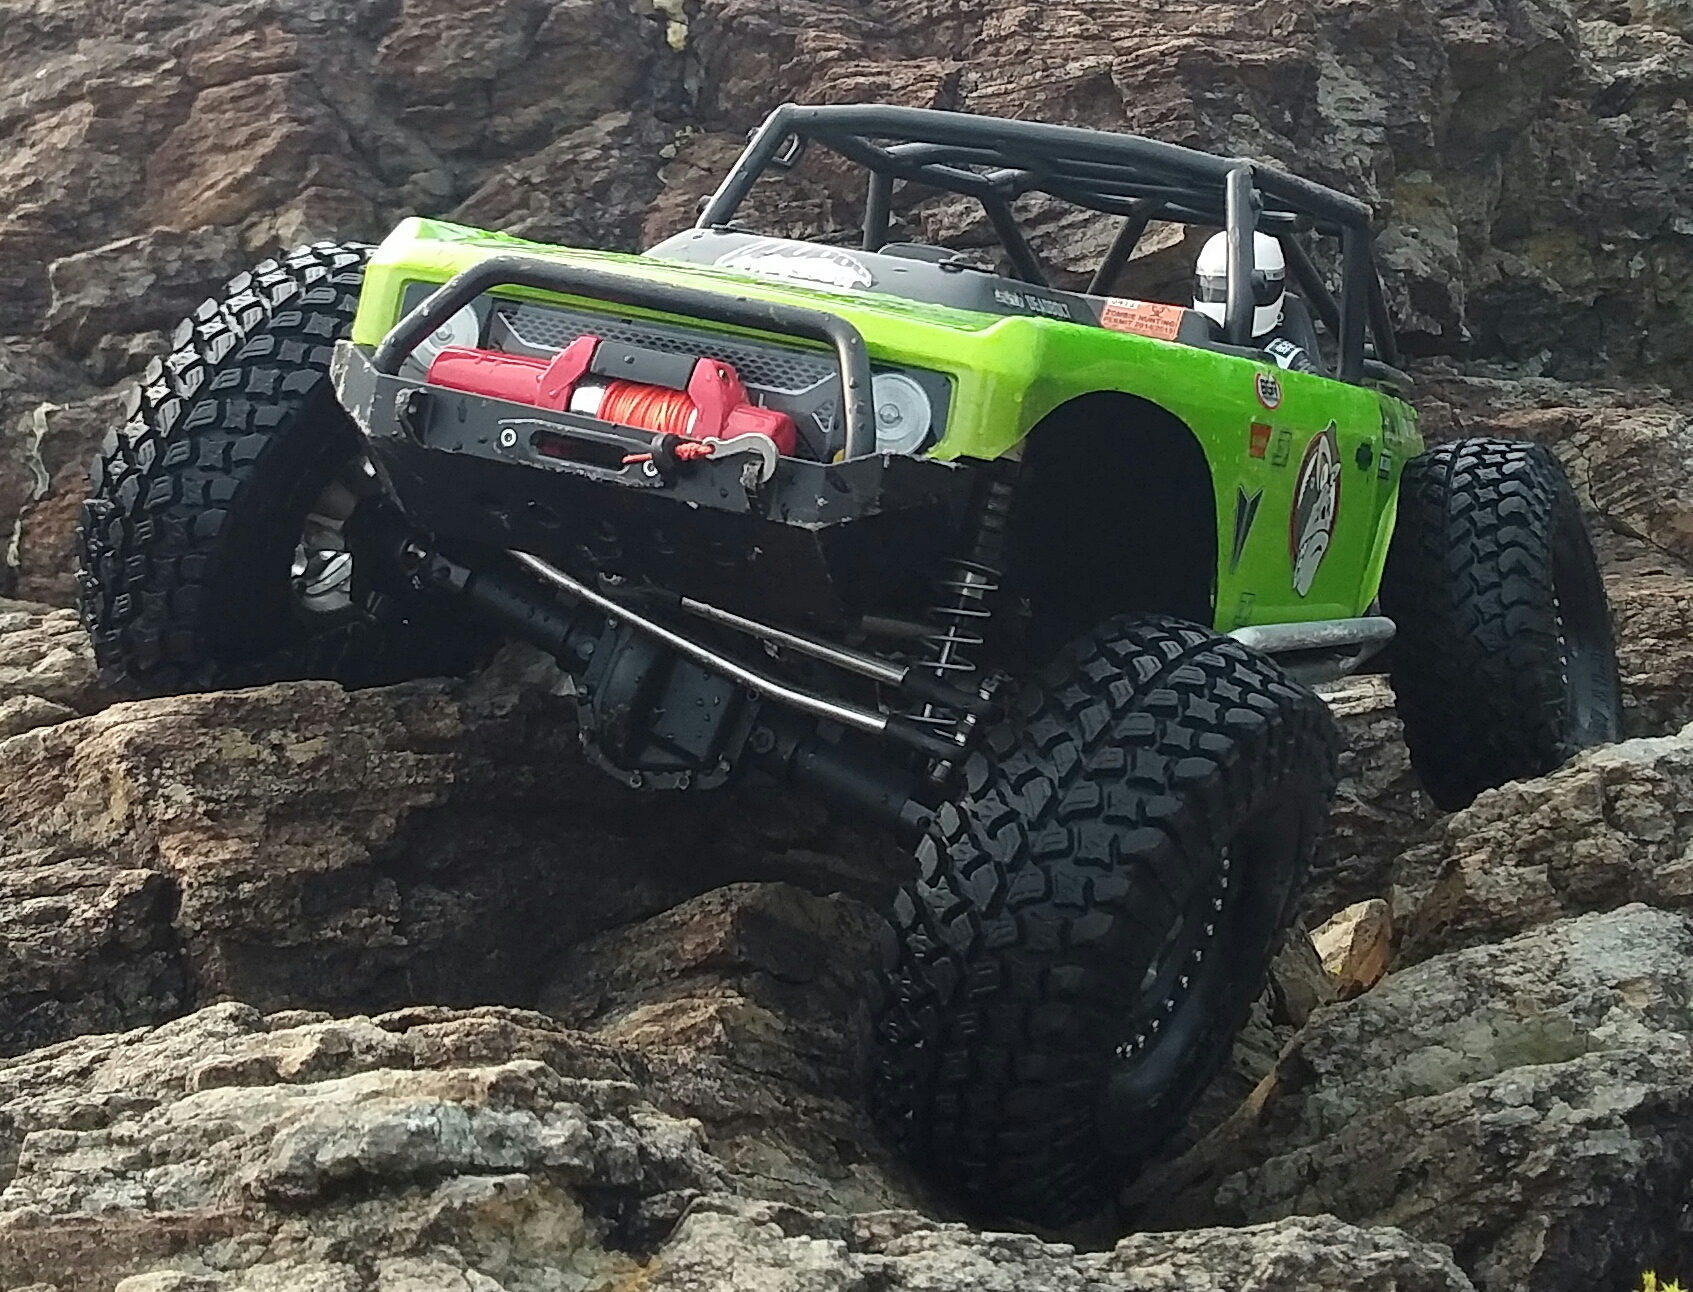 Axial Deadbolt Trail Beast [READER'S RIDE] - RC Car Action